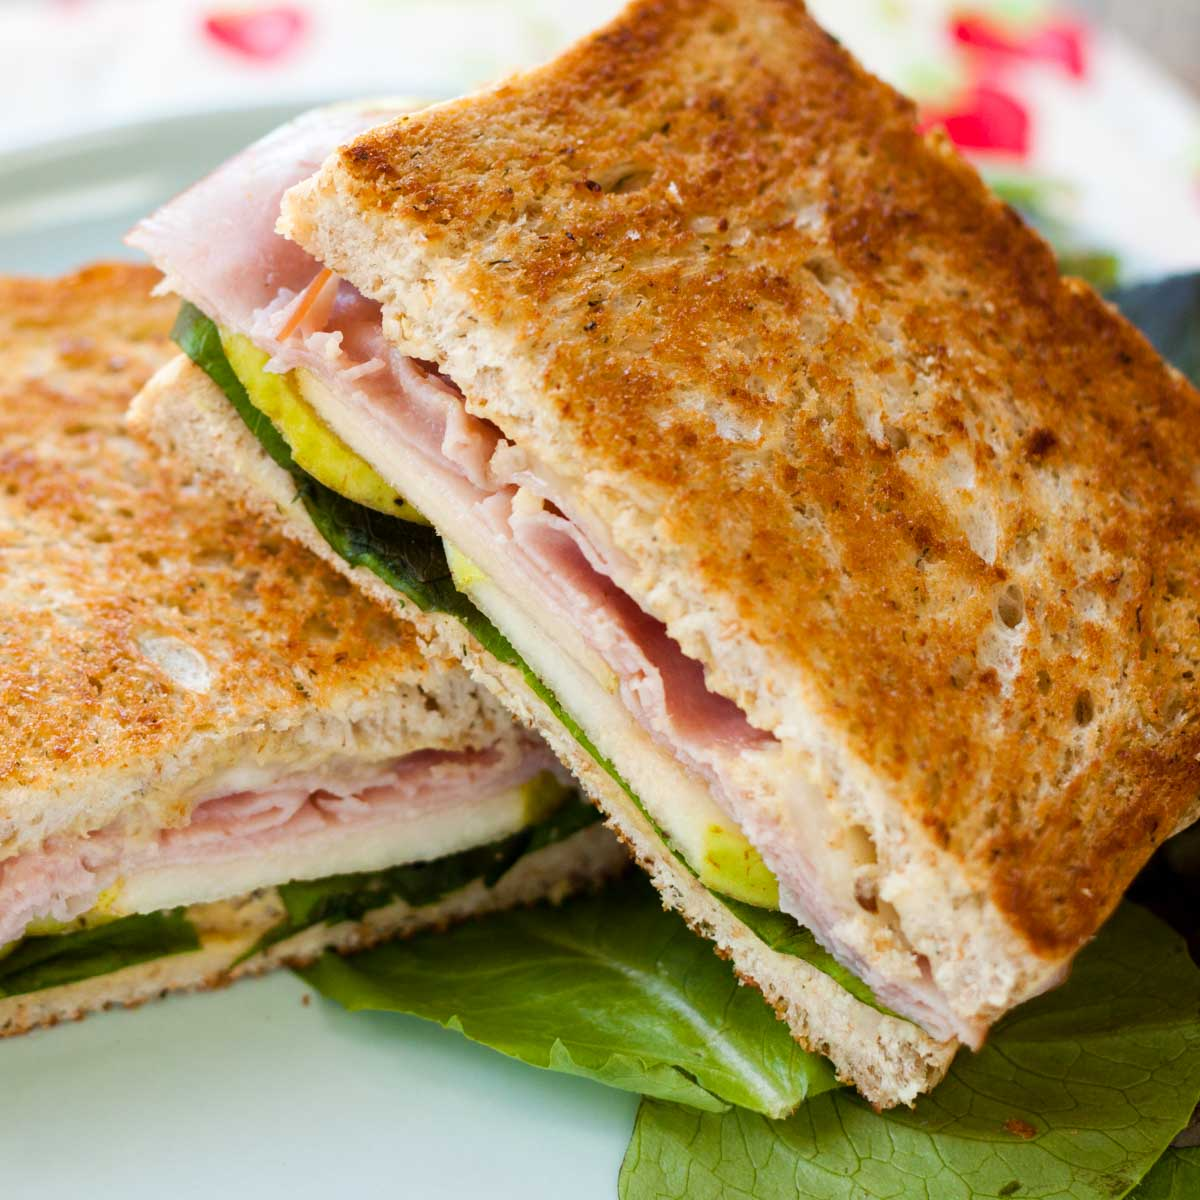 A grilled ham, pear, and havarti sandwich is cut in half so you can see the layers of filling inside.